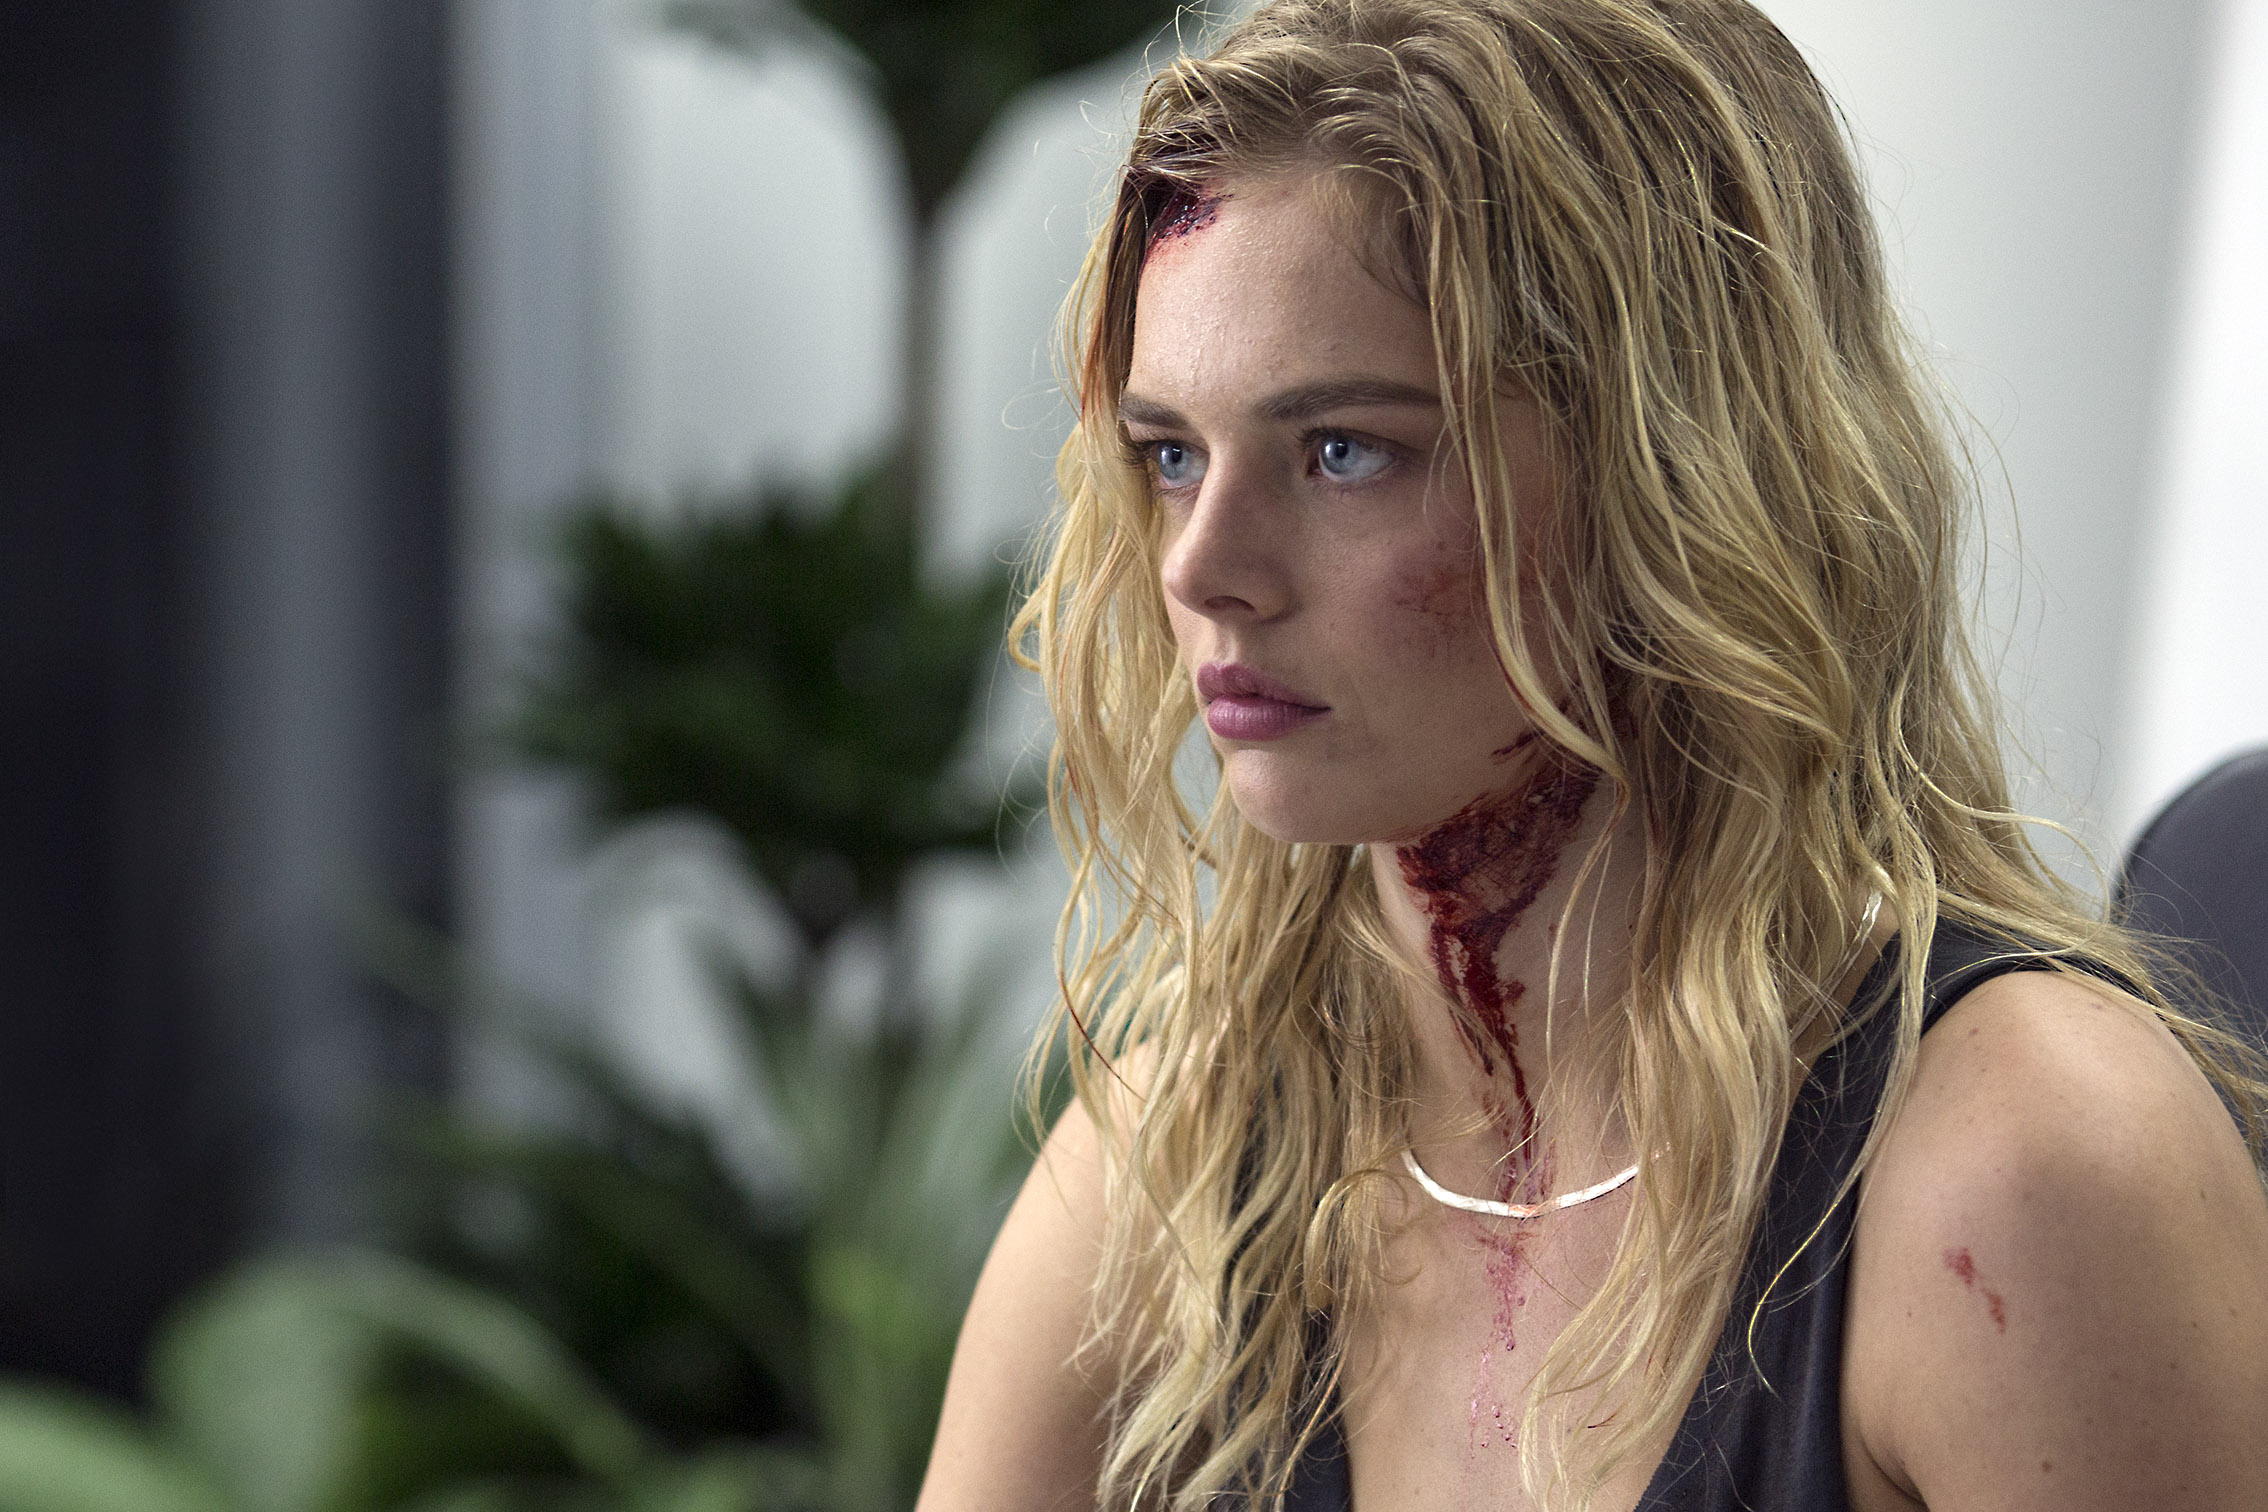 MAYHEM 10 - Samara Weaving Gives Us A Look At Mayhem!